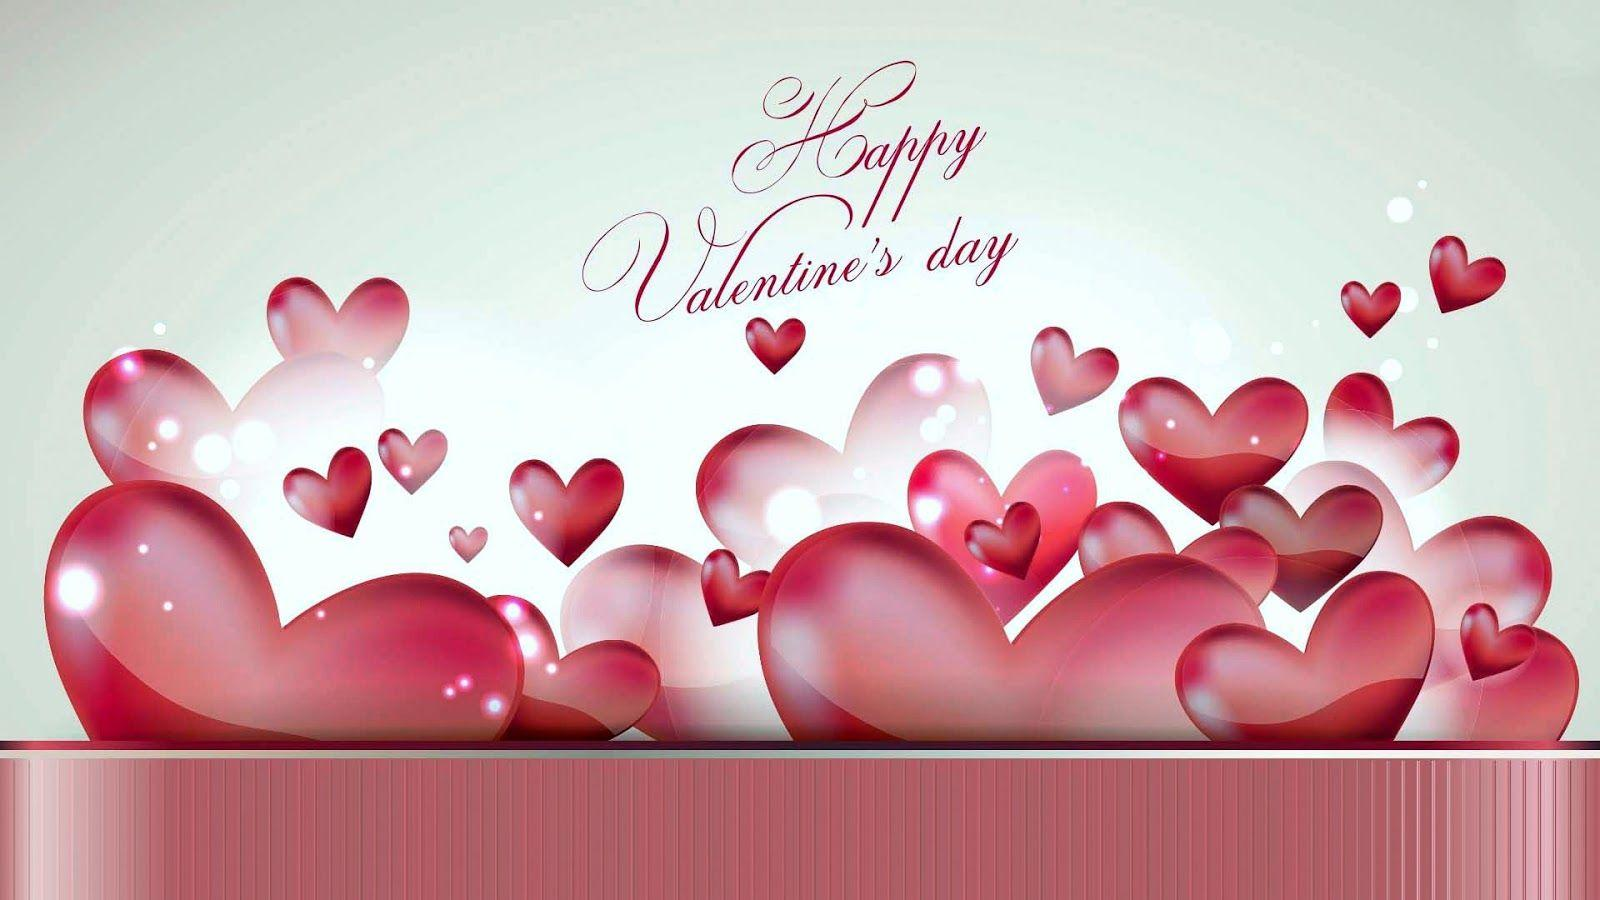 Happy Valentines Hd Wallpapers – Quotes & Wishes for Valentine's Week